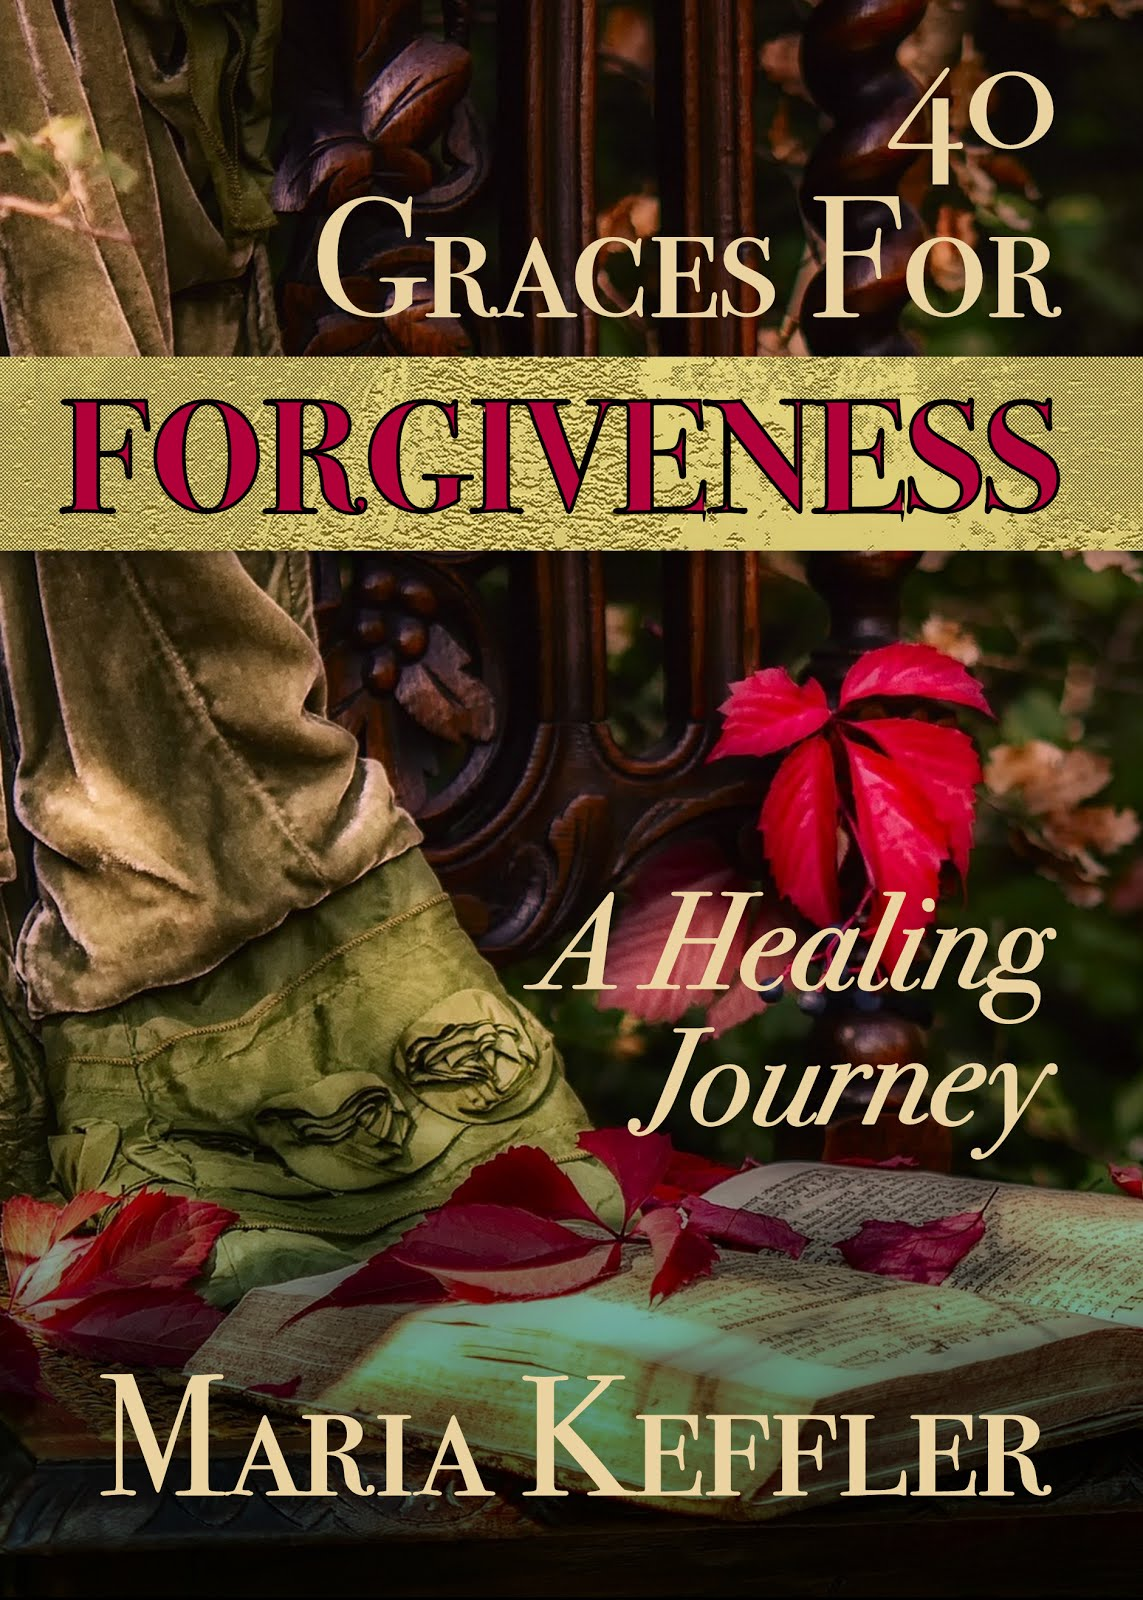 40 Graces for Forgiveness: A Healing Journey